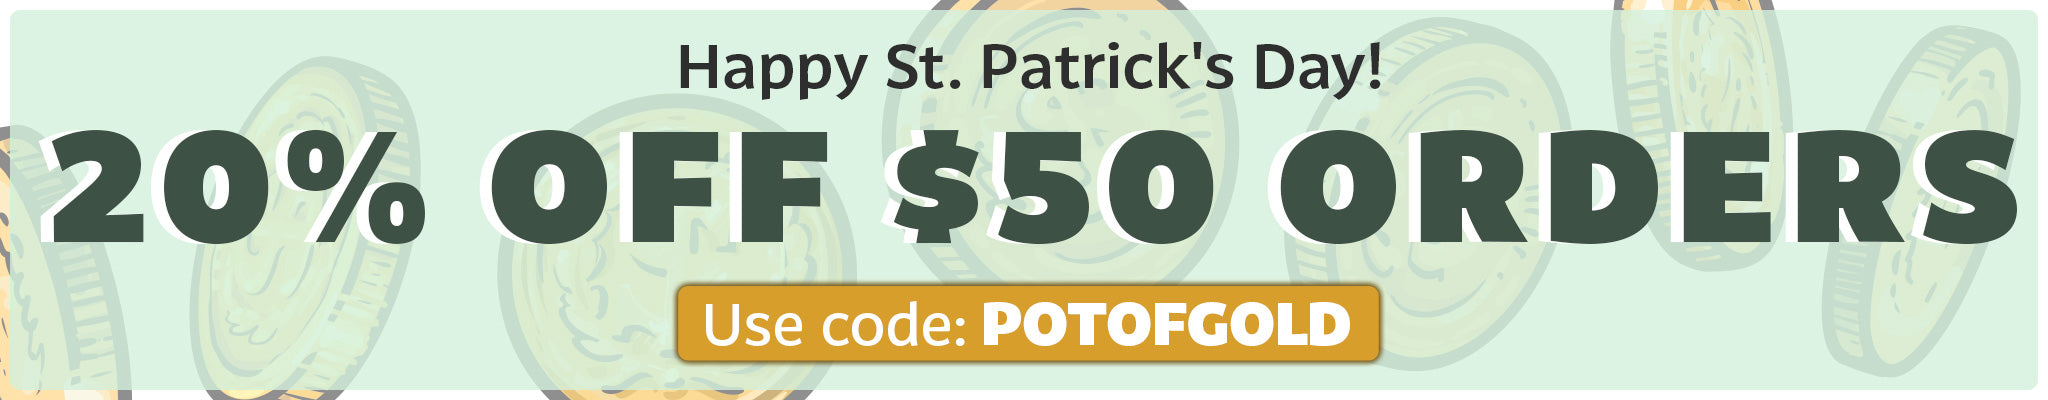 Happy St. Patrick's Day | 20% Off $50 Orders | Use Code: POTOFGOLD